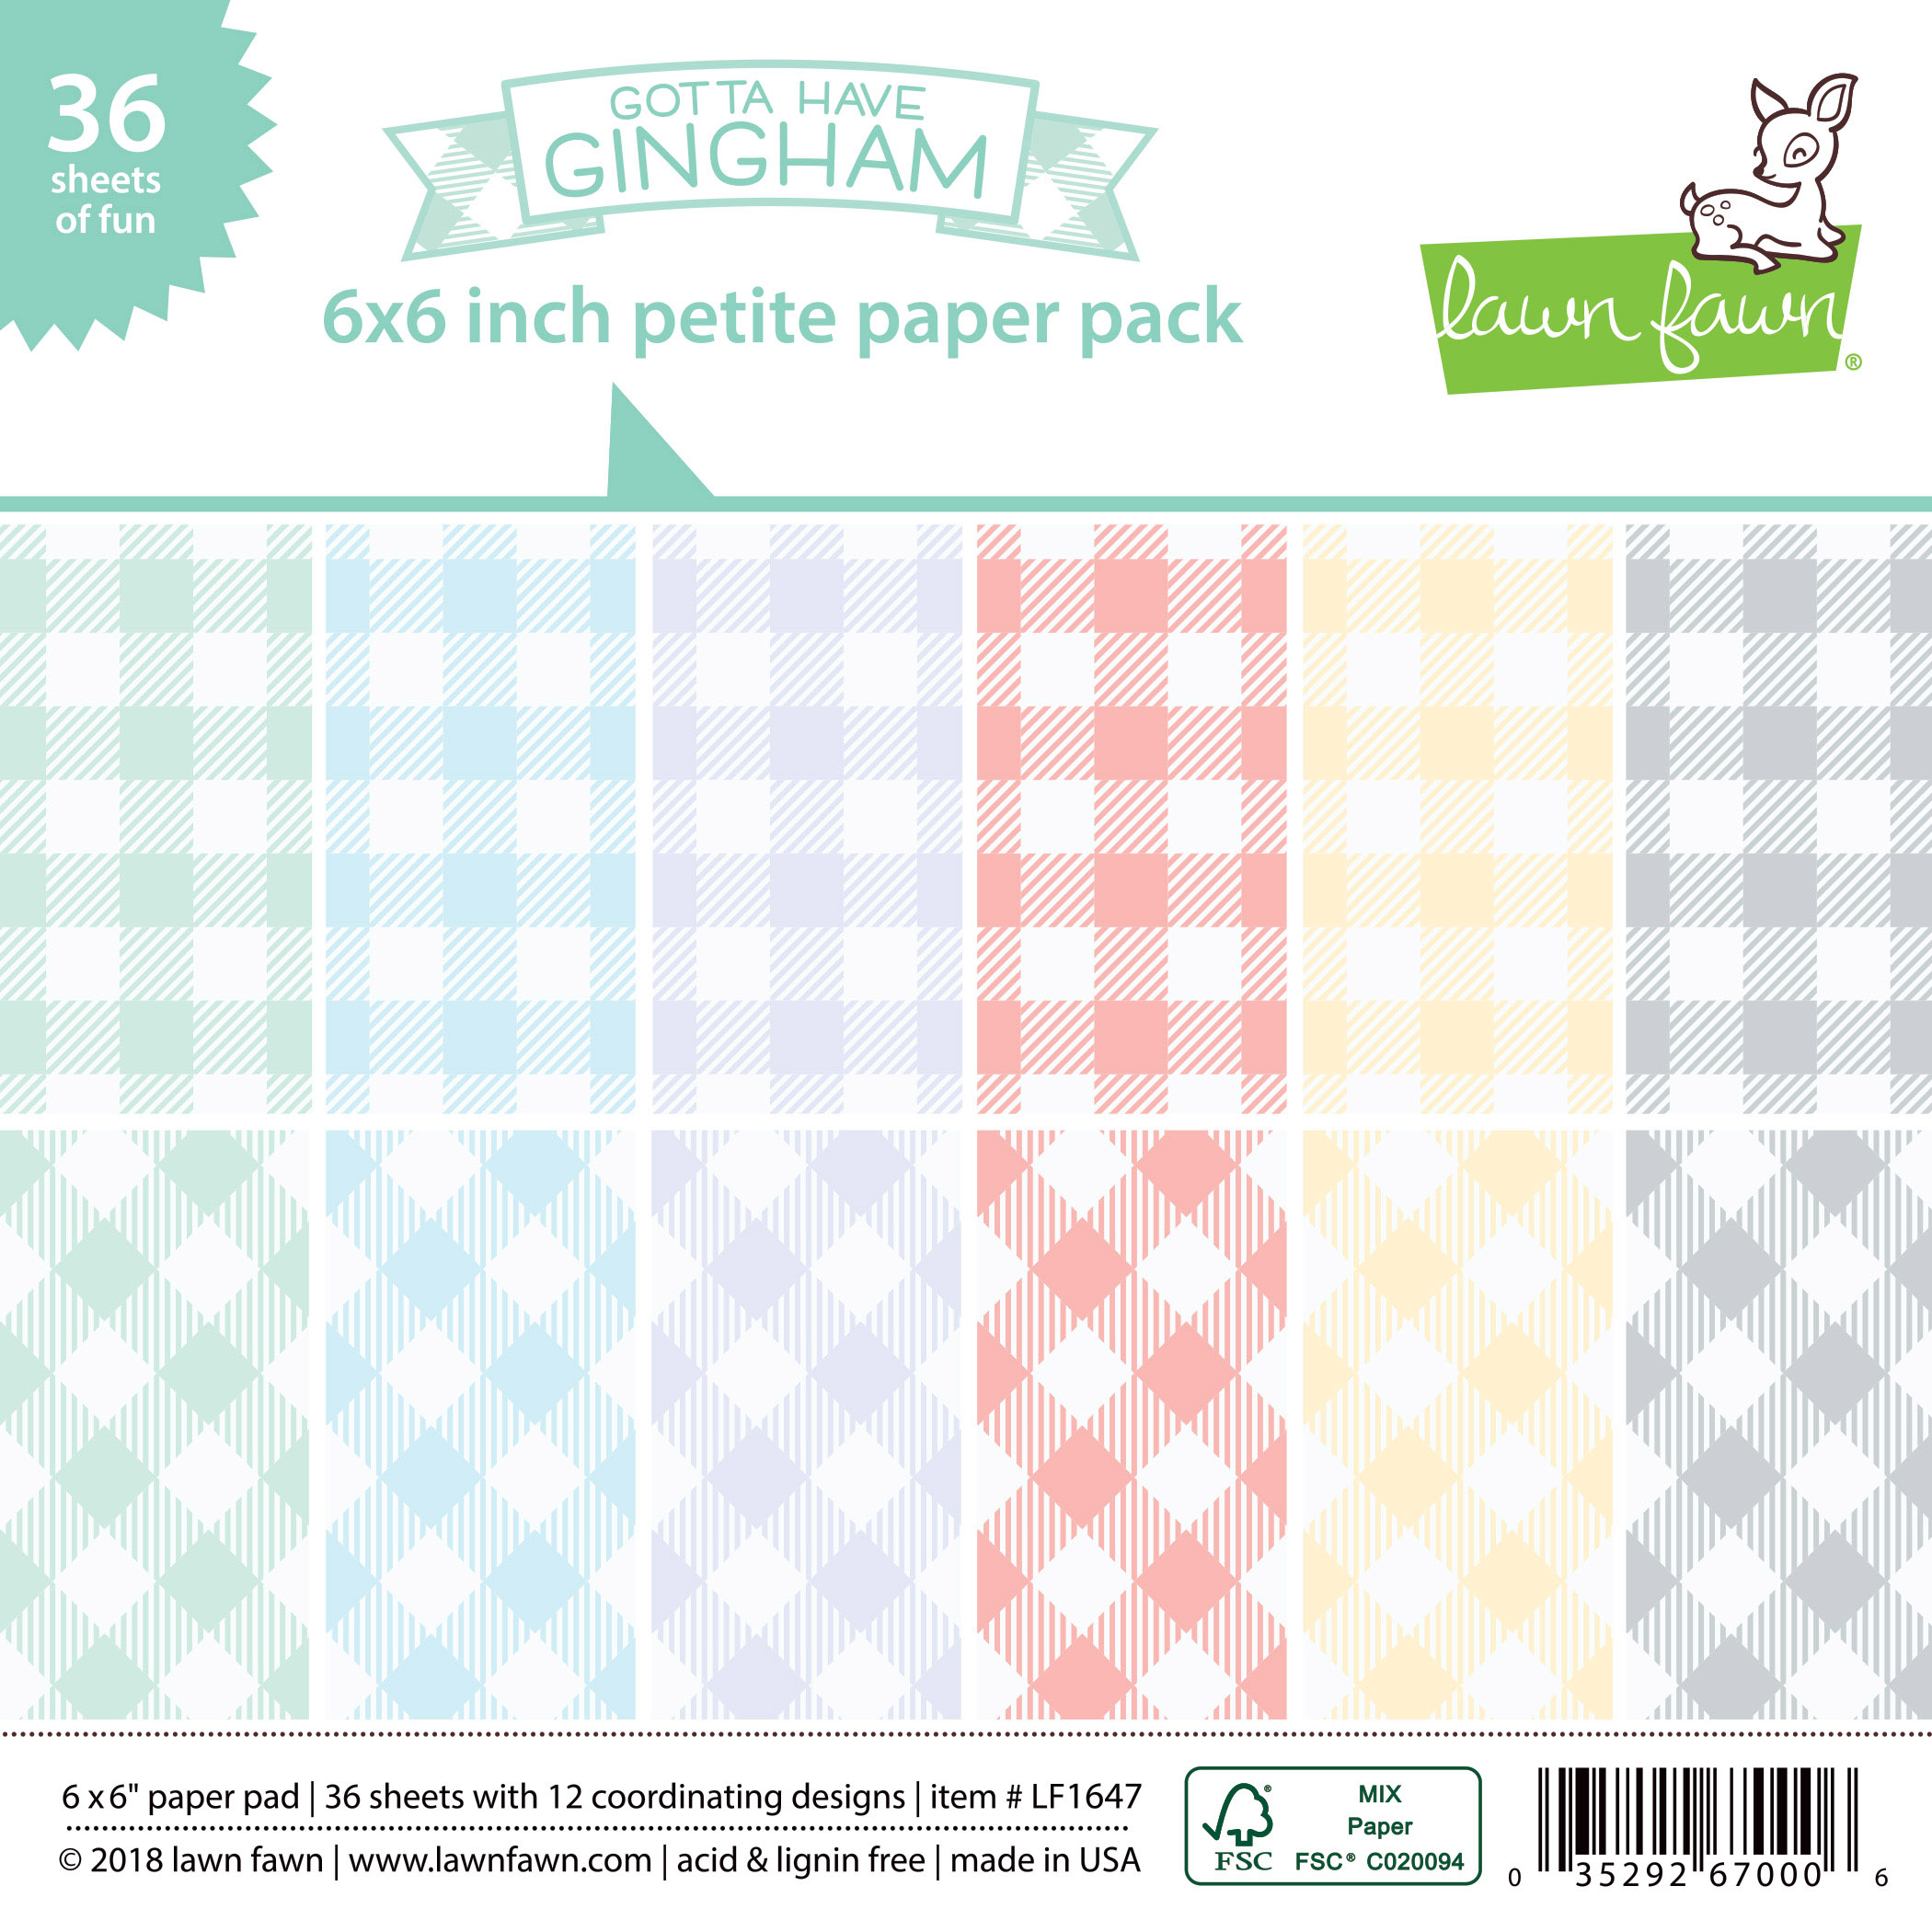 Lawn Fawn - gotta have gingham petite paper pack